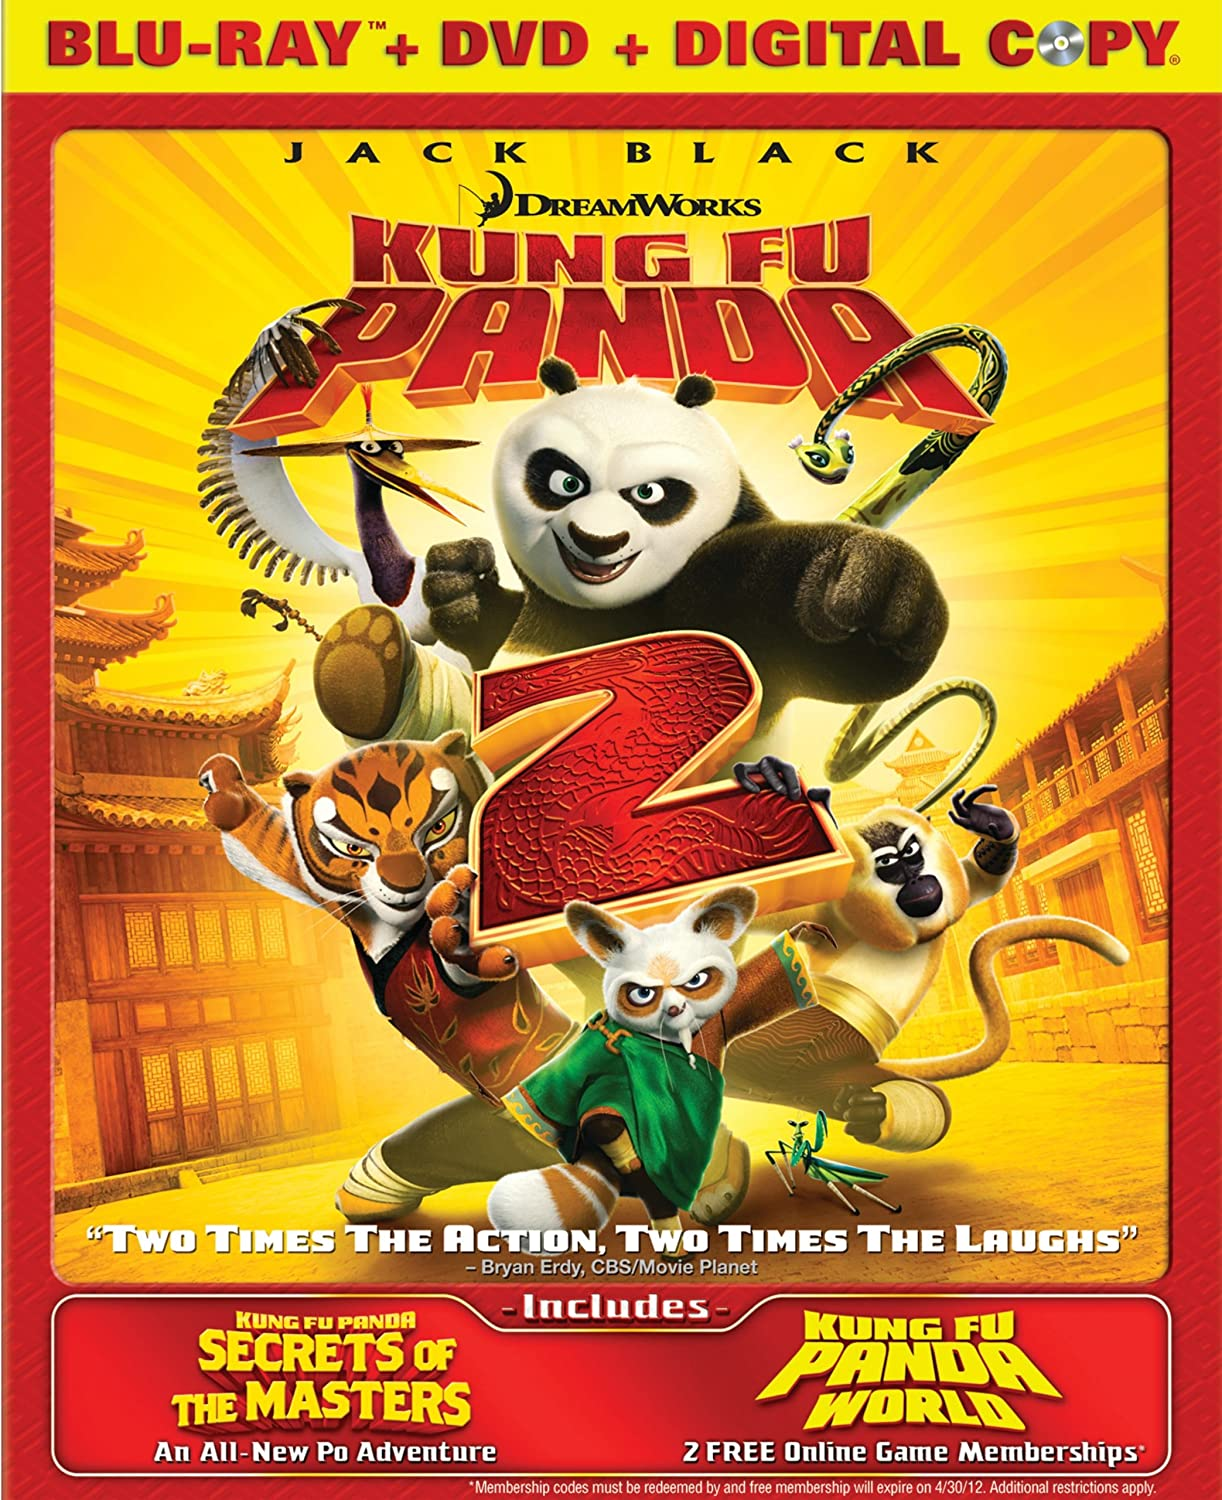 Kung fu panda 2 free online games save playstation 2 games without memory card